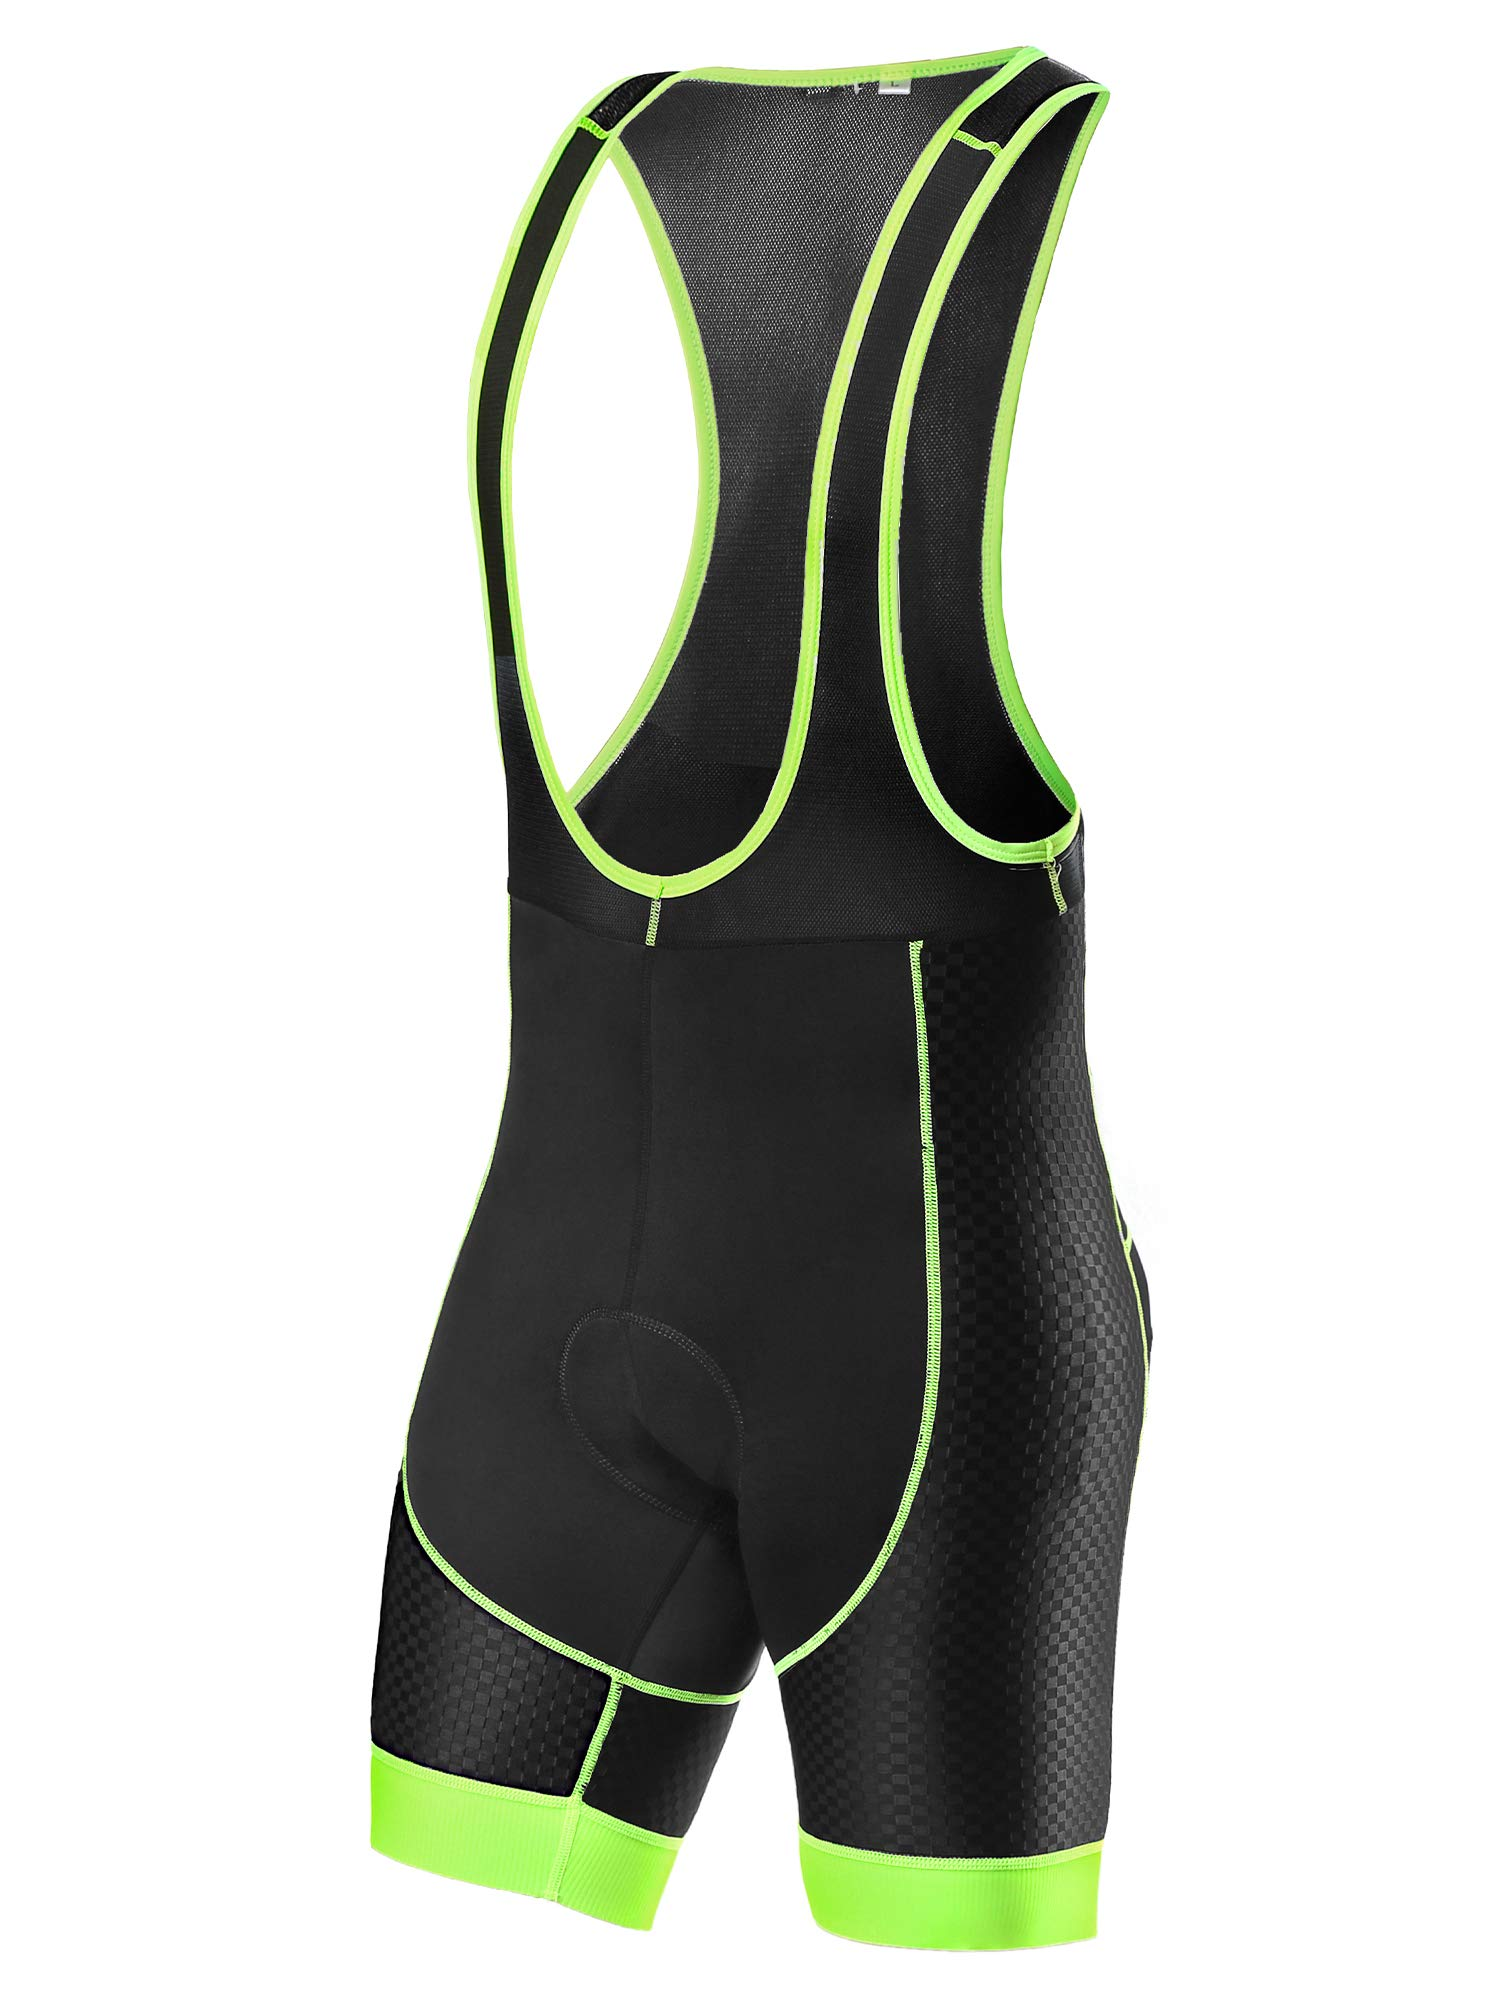 Letook Men's Bike Bib Shorts Gel Padded Bicycle Cycling Bibs Tight Breathable Mesh for Outdoor Riding 100015 Green L by Letook